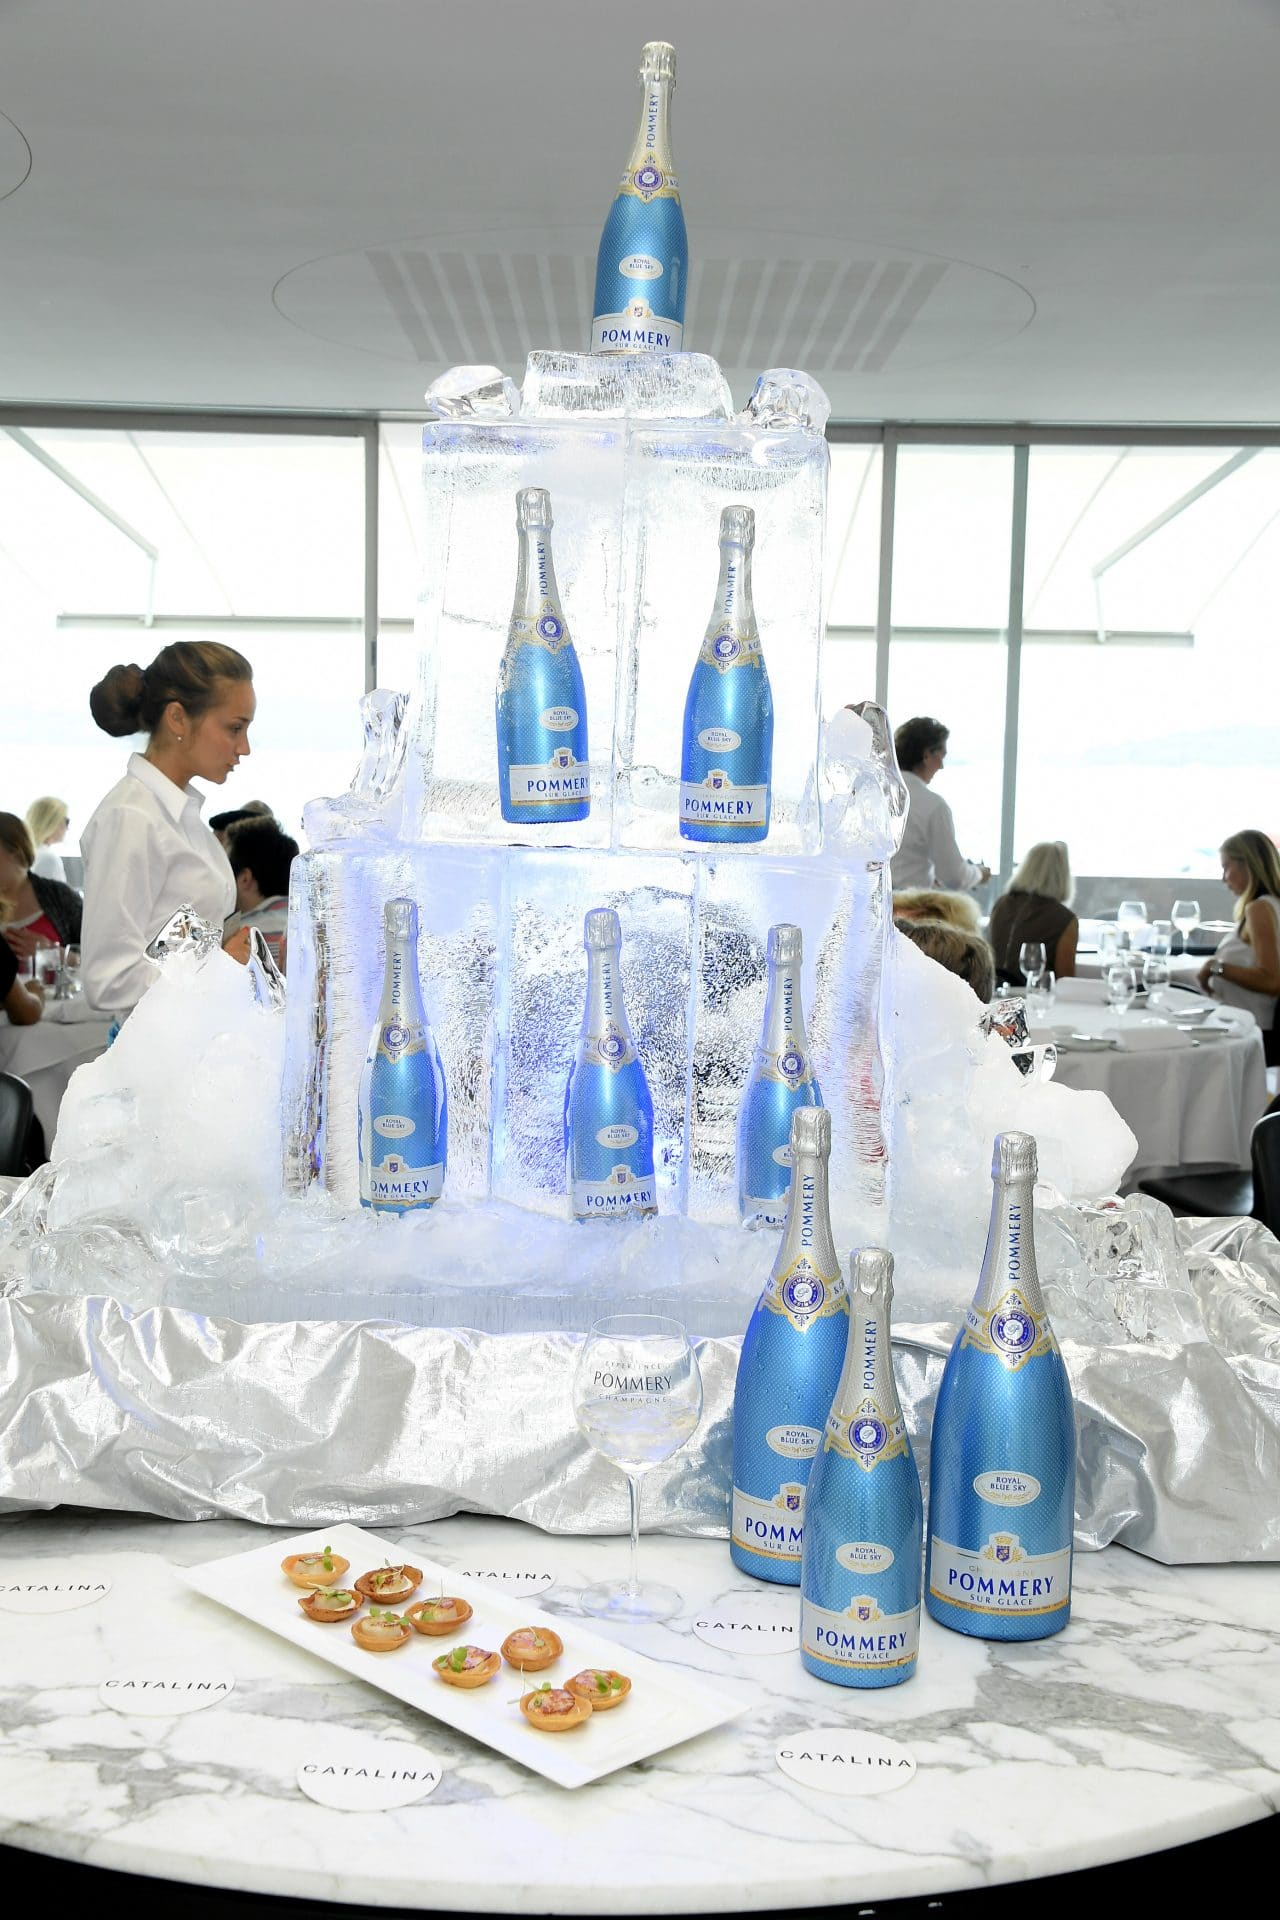 Catalina's with Pommery Ice Sculpture